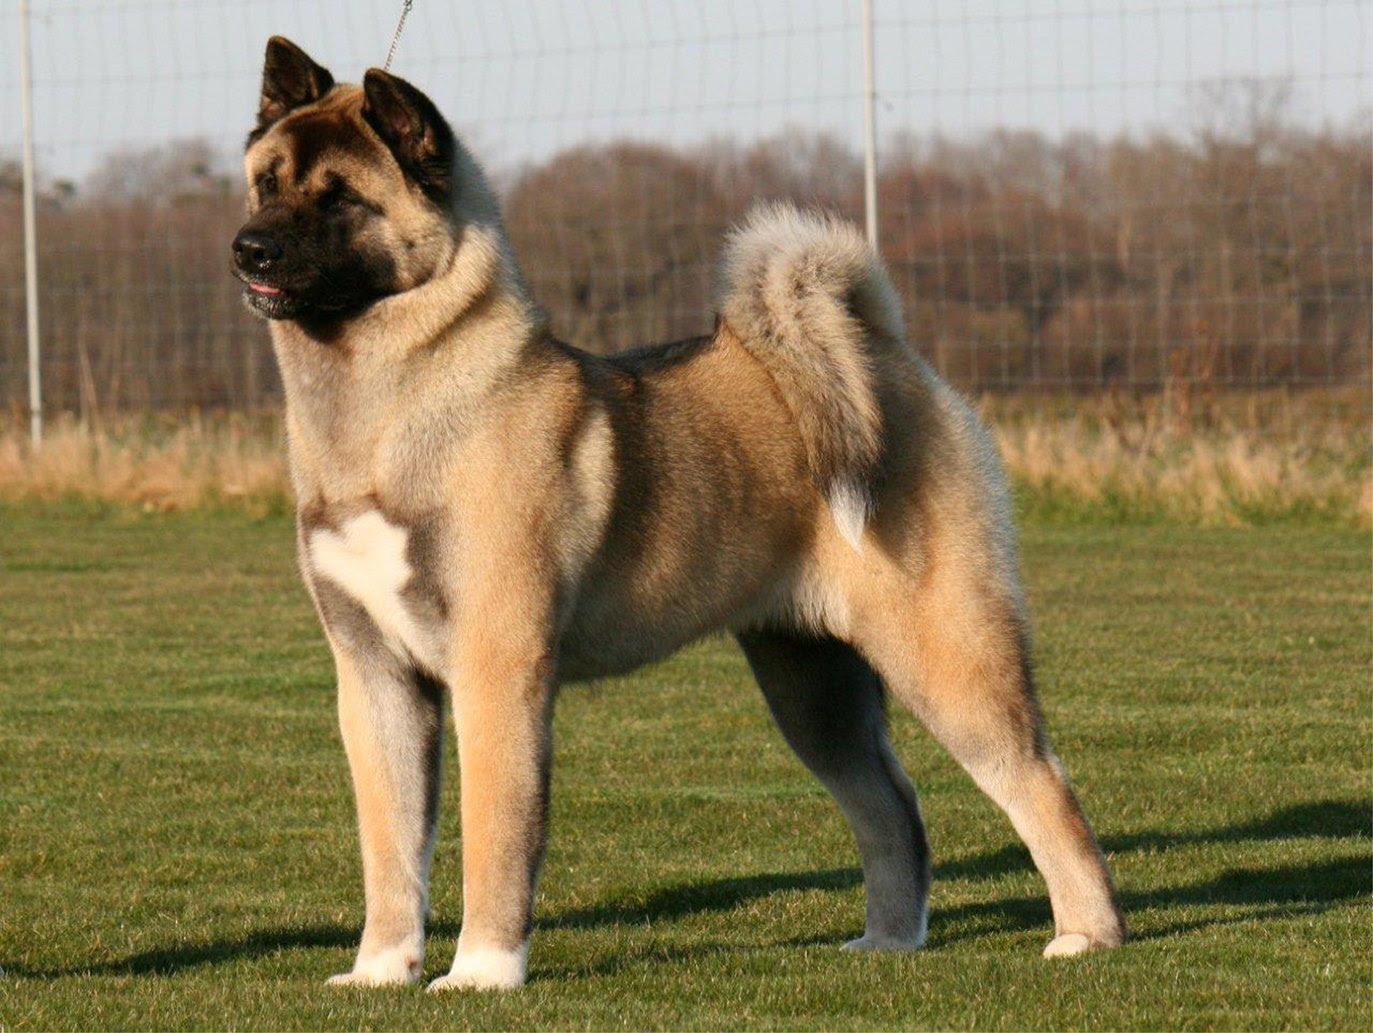 Akita dogs must be kept under control says MP  The Ambler